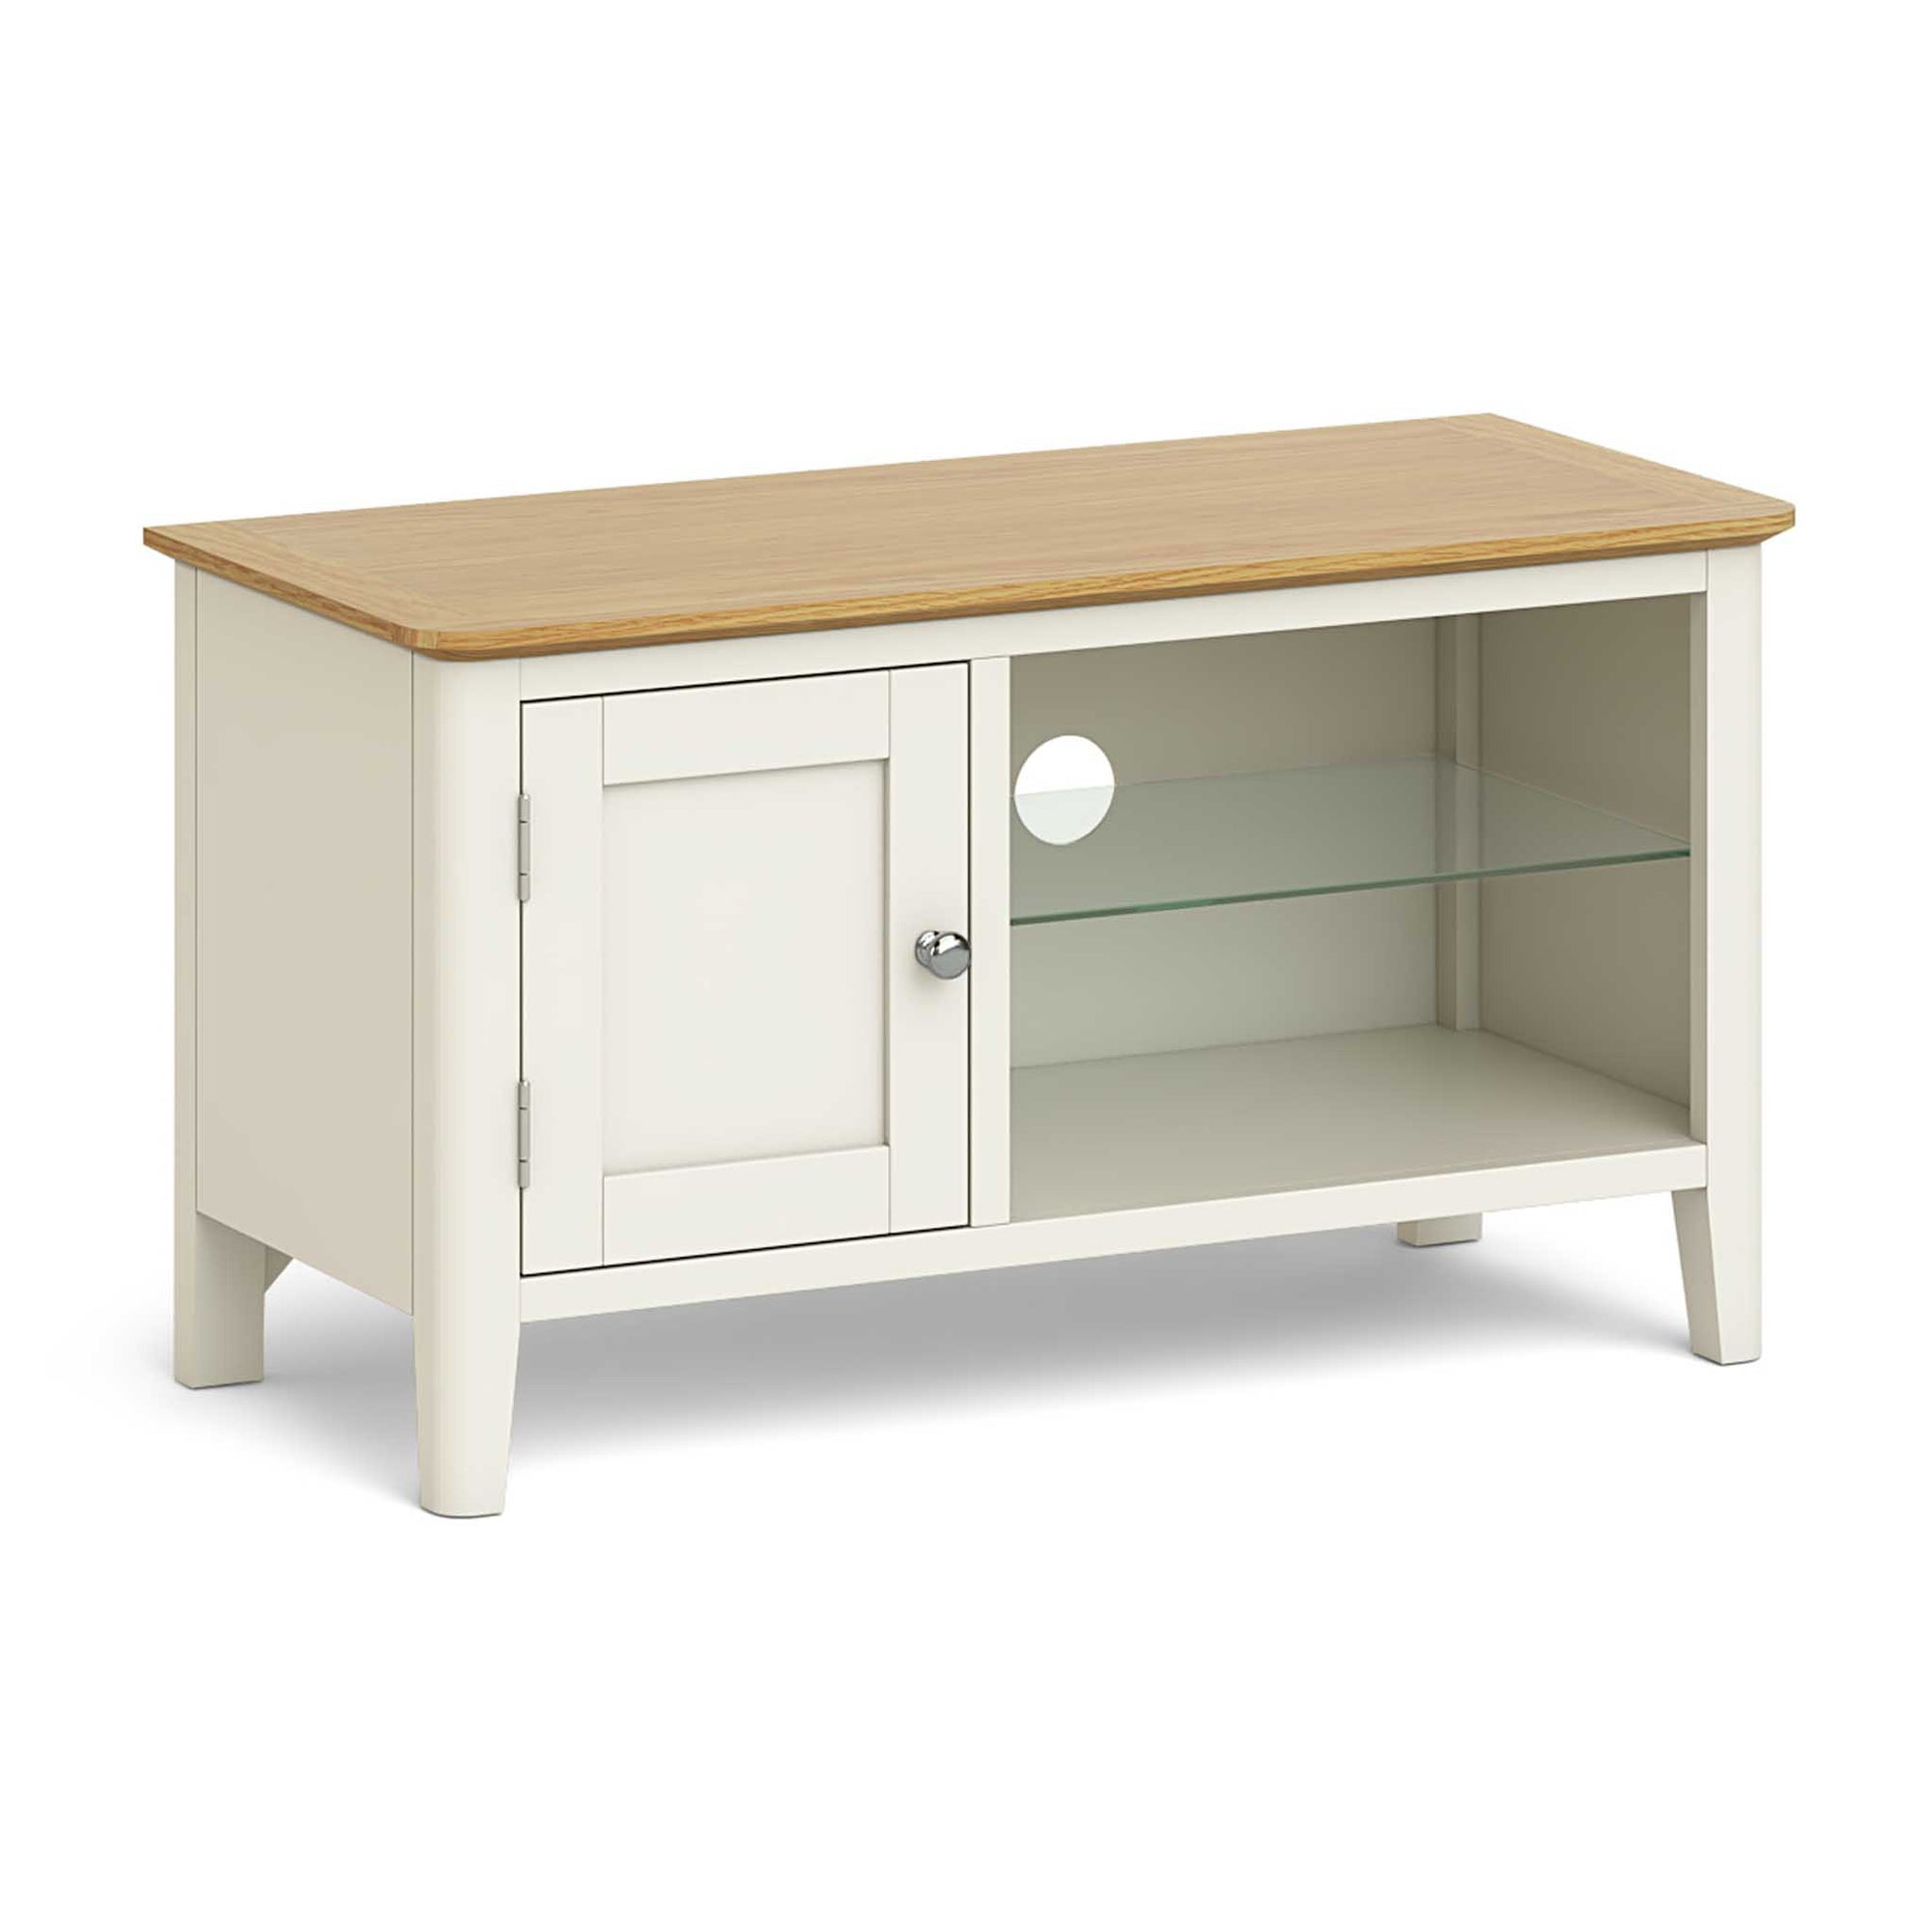 The Windsor Cream Small Oak Top TV Stand Storage Unit from Roseland Furniture